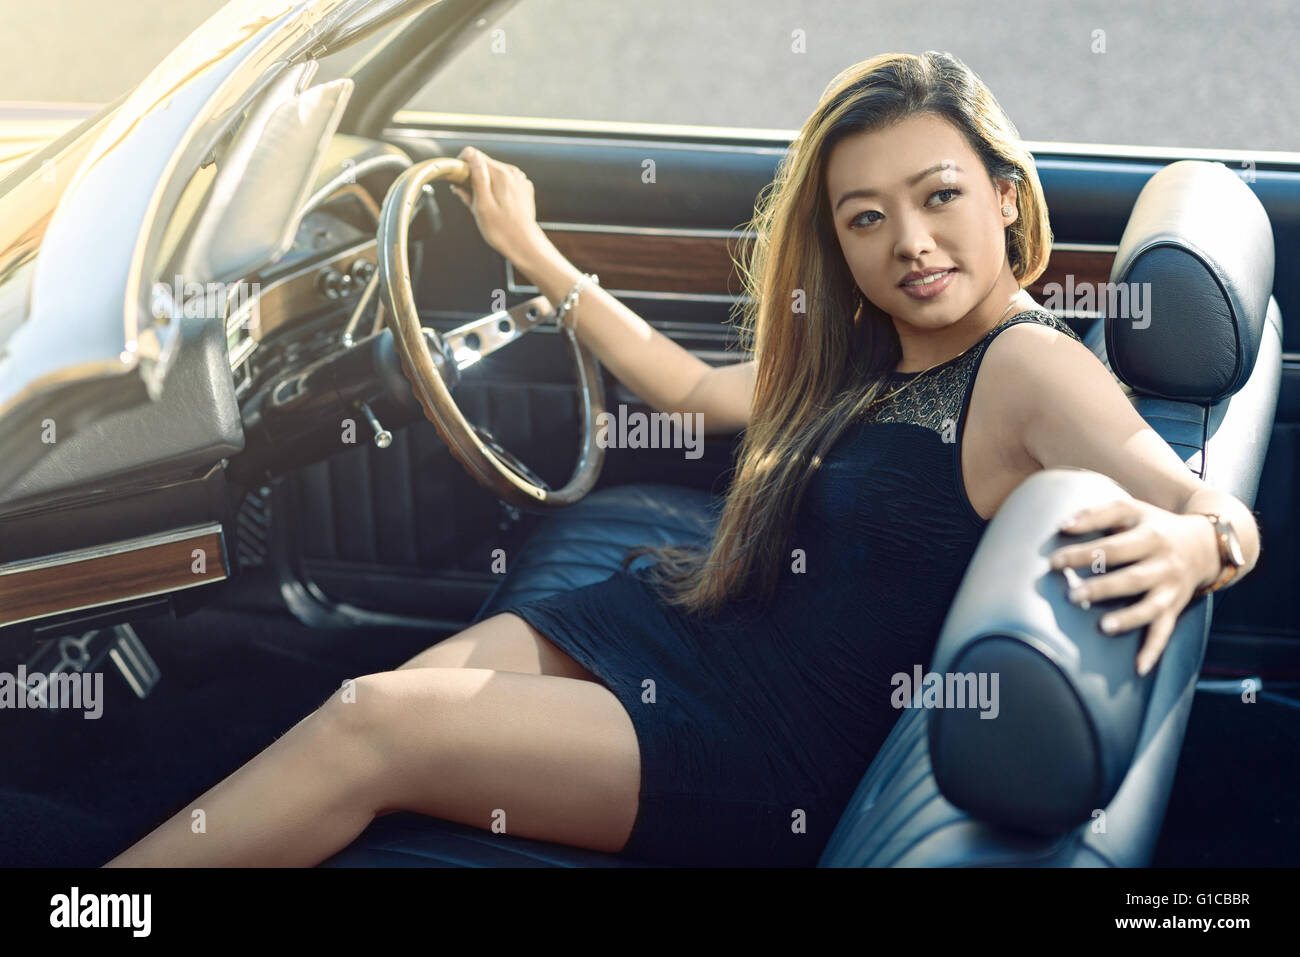 Attractive girl sitting in vintage car parked on the street - Stock Image